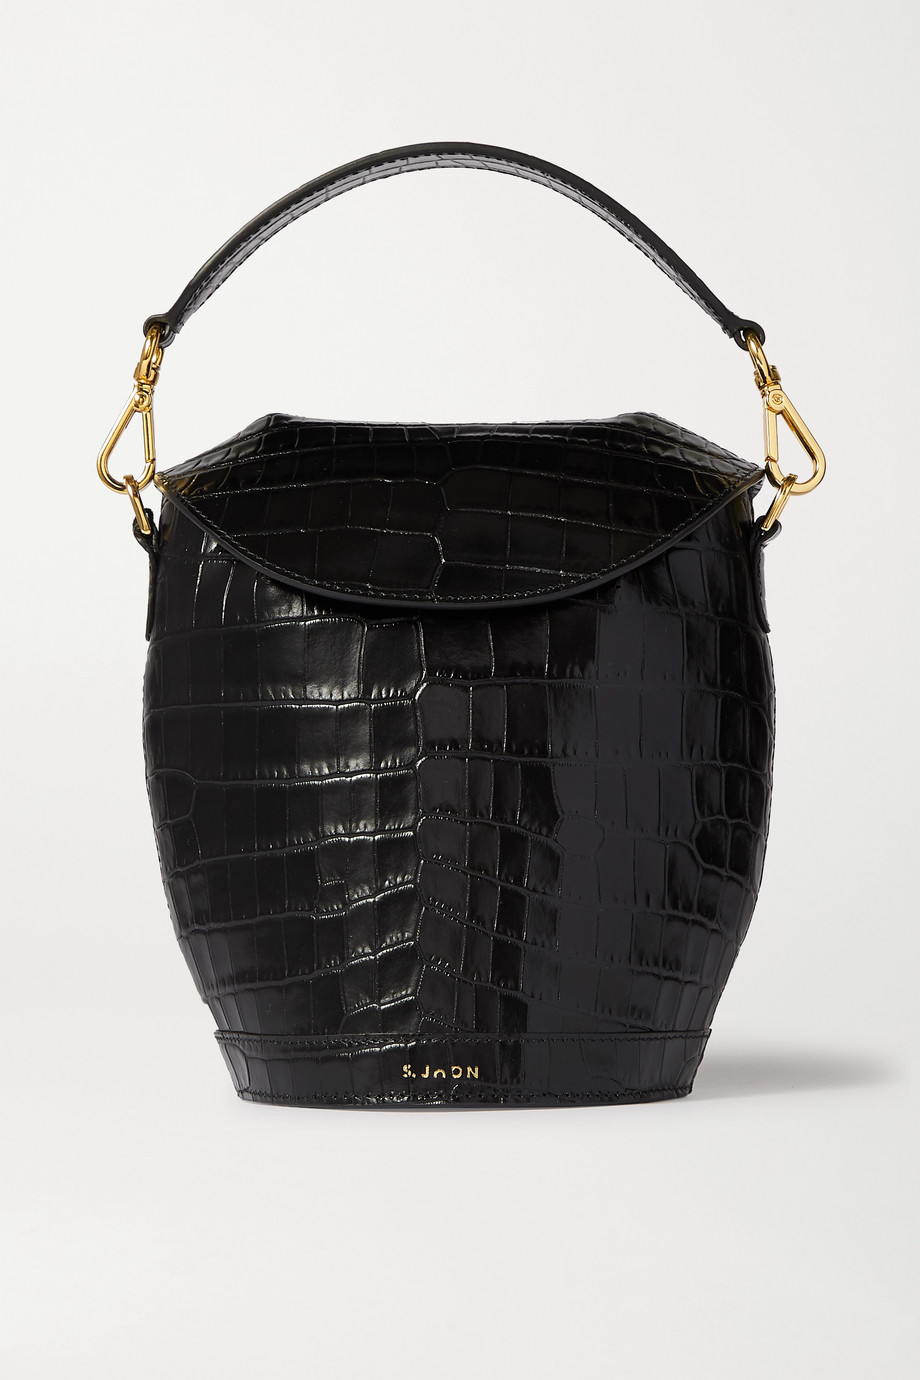 S.Joon Milk Pail croc-effect leather tote